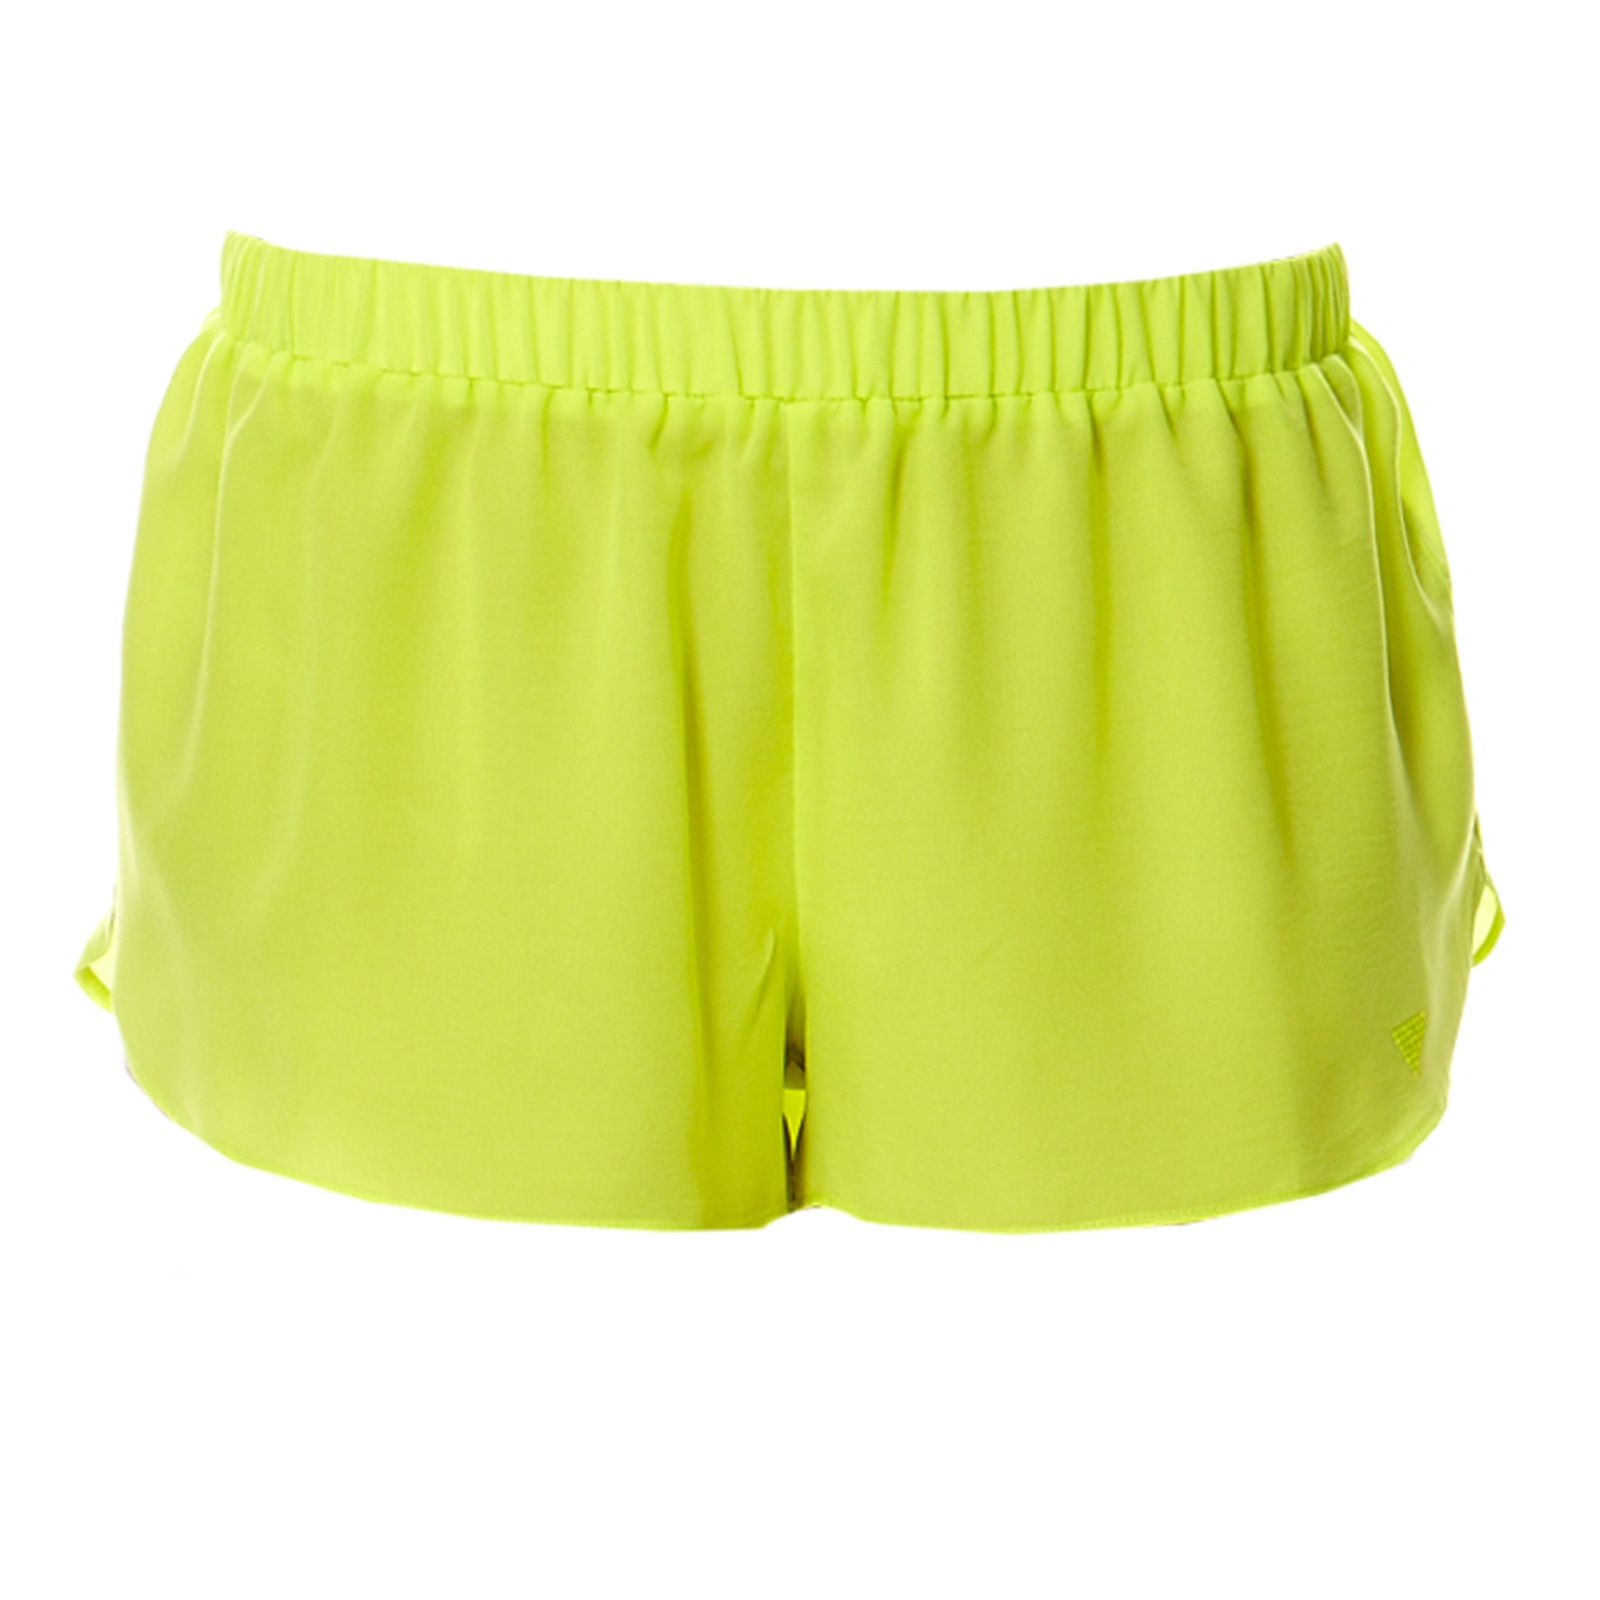 Guess Underwear Women :  Radiance - Short - jaune fluo